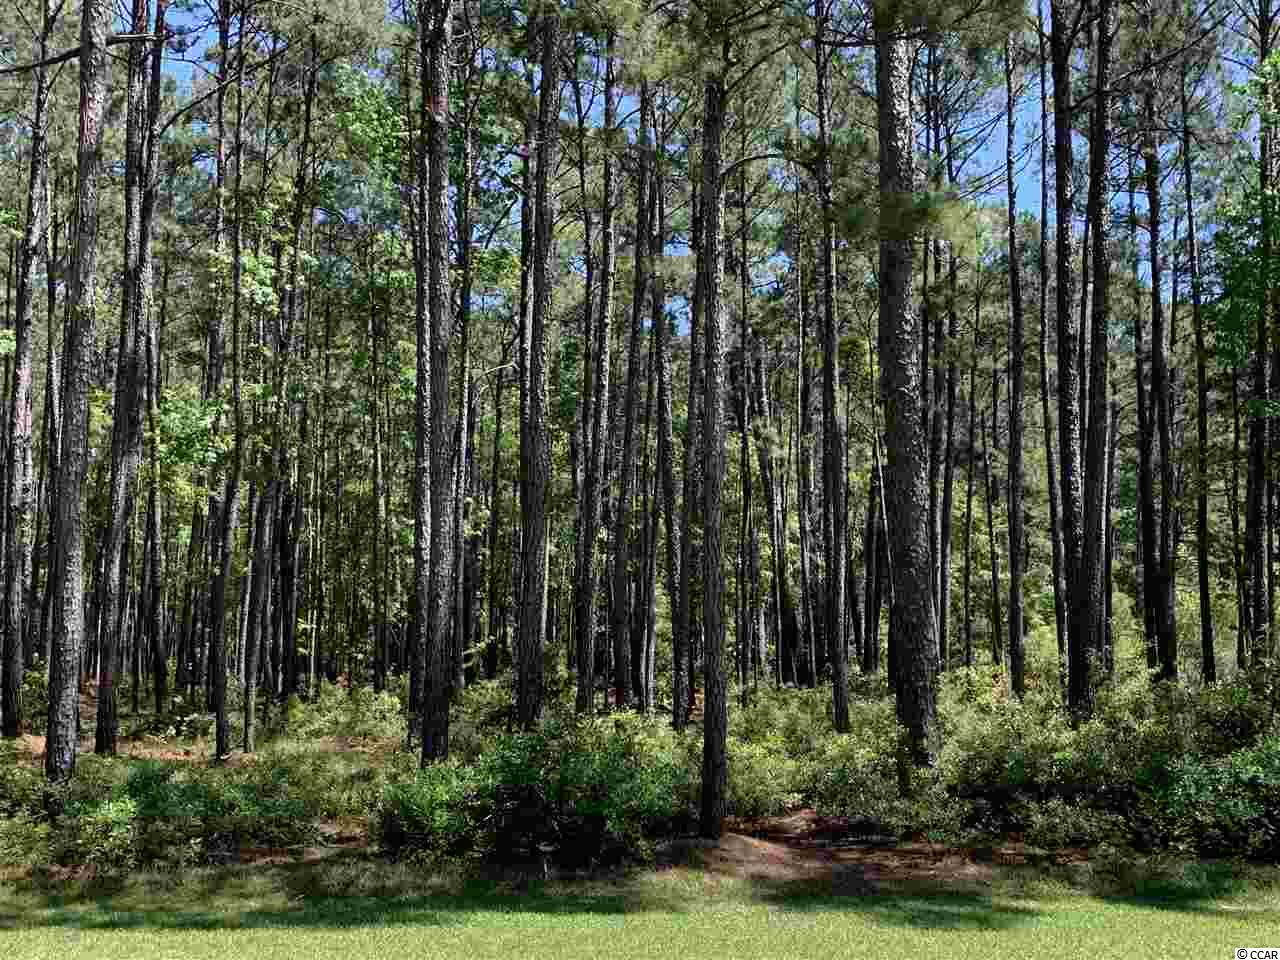 This lovely treed lot is on the Oceanside of Prince George! 3.95 acres just around the corner from the Prince George Oceanside clubhouse and beach access. Don't miss your chance to live in this unique community! Just south of Pawleys Island, the Prince George community offers 150 unique single family homesites that stretch from the Atlantic Ocean to the Waccamaw River (IntracoastalWaterway). Prince George oceanside amenities include a swimming pool, clubhouse, tennis, volleyball and basketball courts,  nature trails and a 5-acre lake. The riverside amenities include a River Clubhouse with sitting area, fireplace, boardwalk and 28-slip marina.